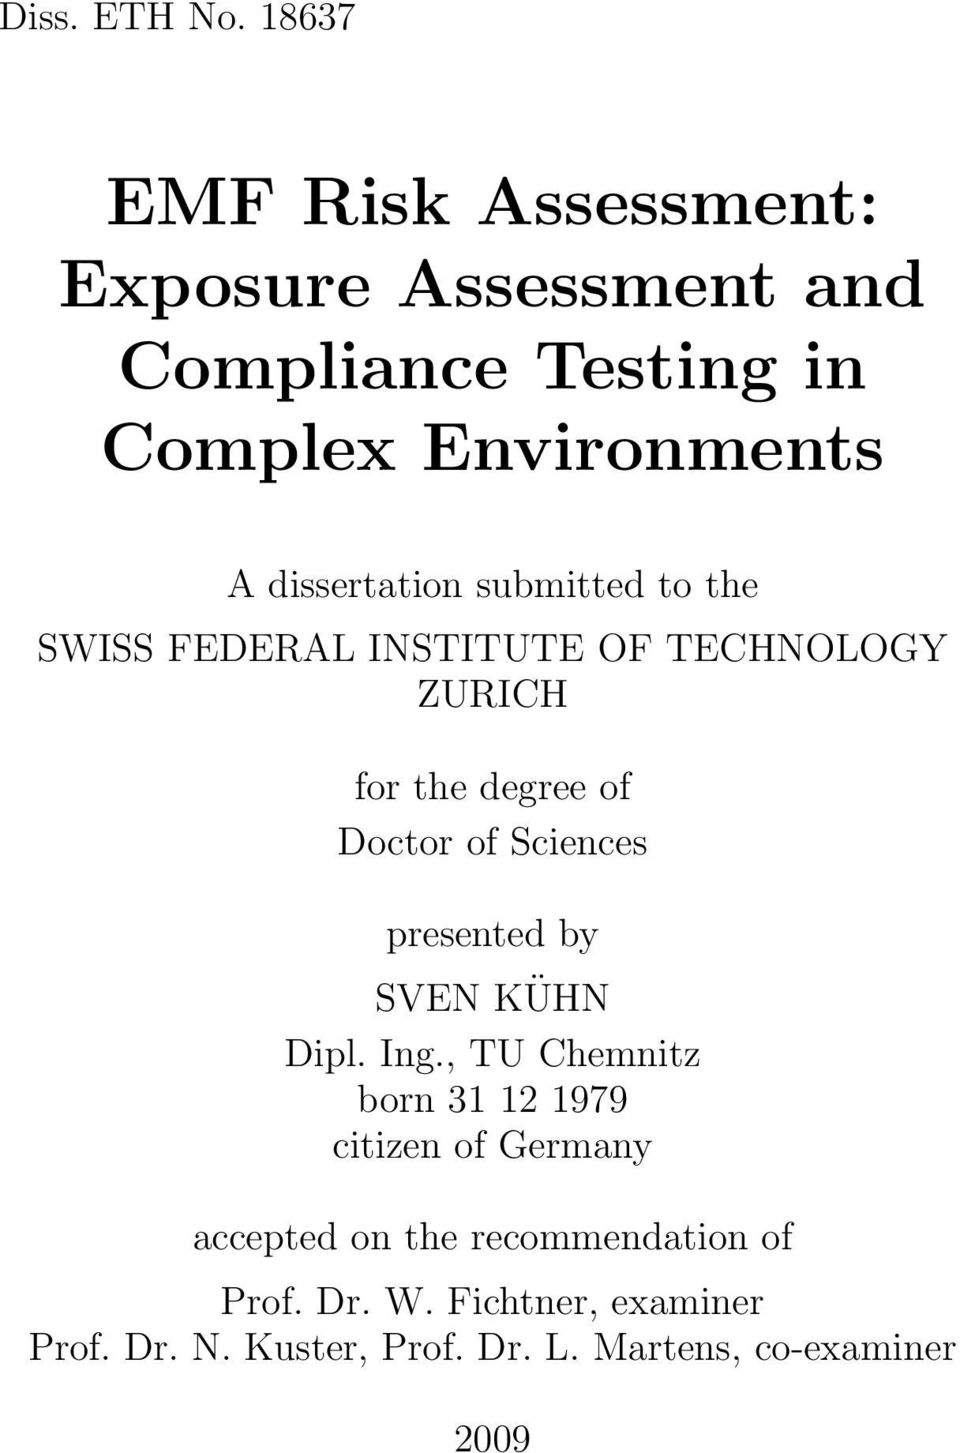 dissertation submitted to the SWISS FEDERAL INSTITUTE OF TECHNOLOGY ZURICH for the degree of Doctor of